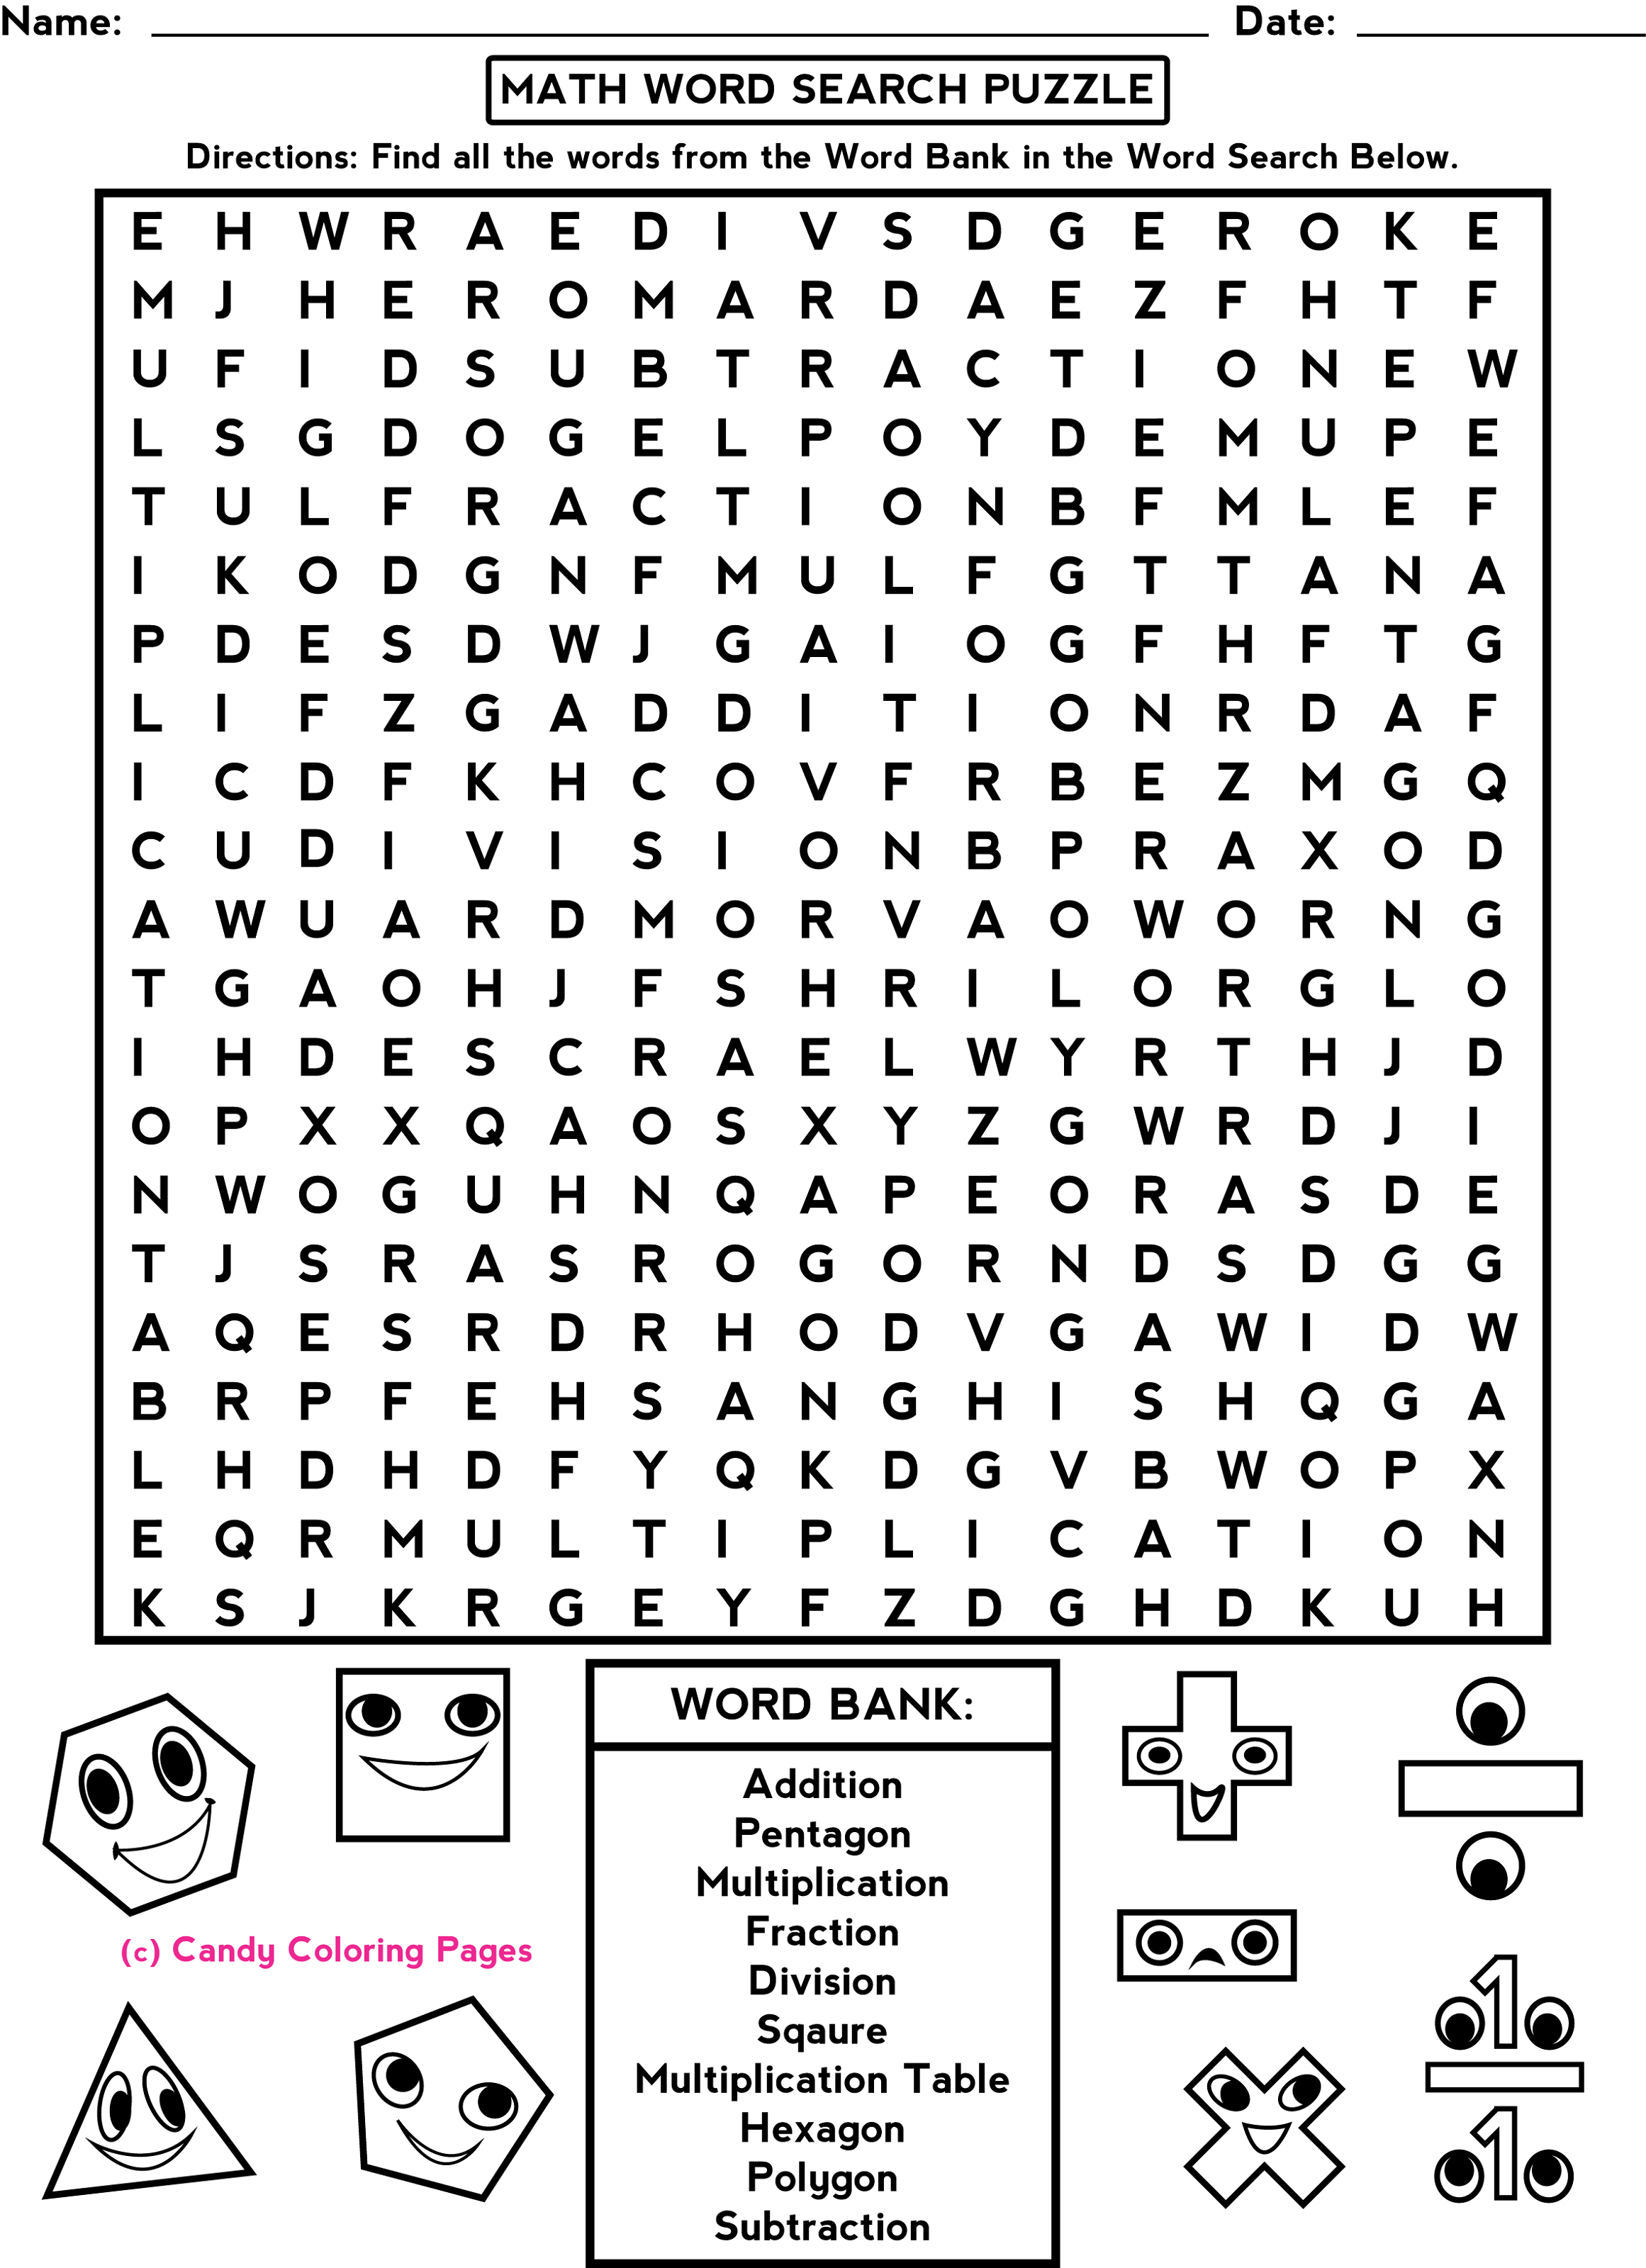 fun sheets for math word search